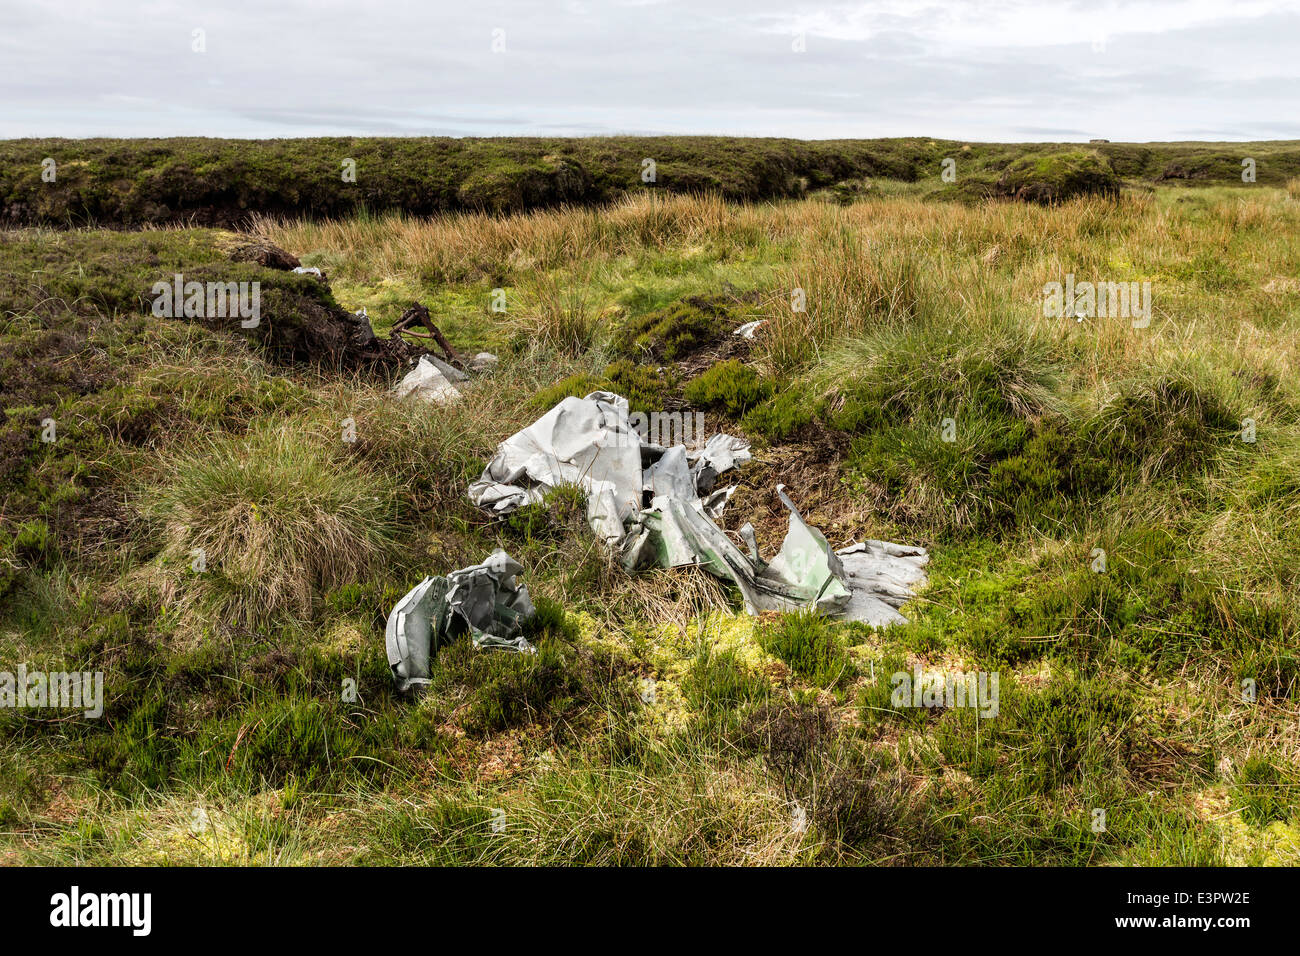 Crash Site of a Blenheim Mk1, L1252 Aircraft Which Crashed in Bad Weather on 26th October 1938, Lunedale, County - Stock Image